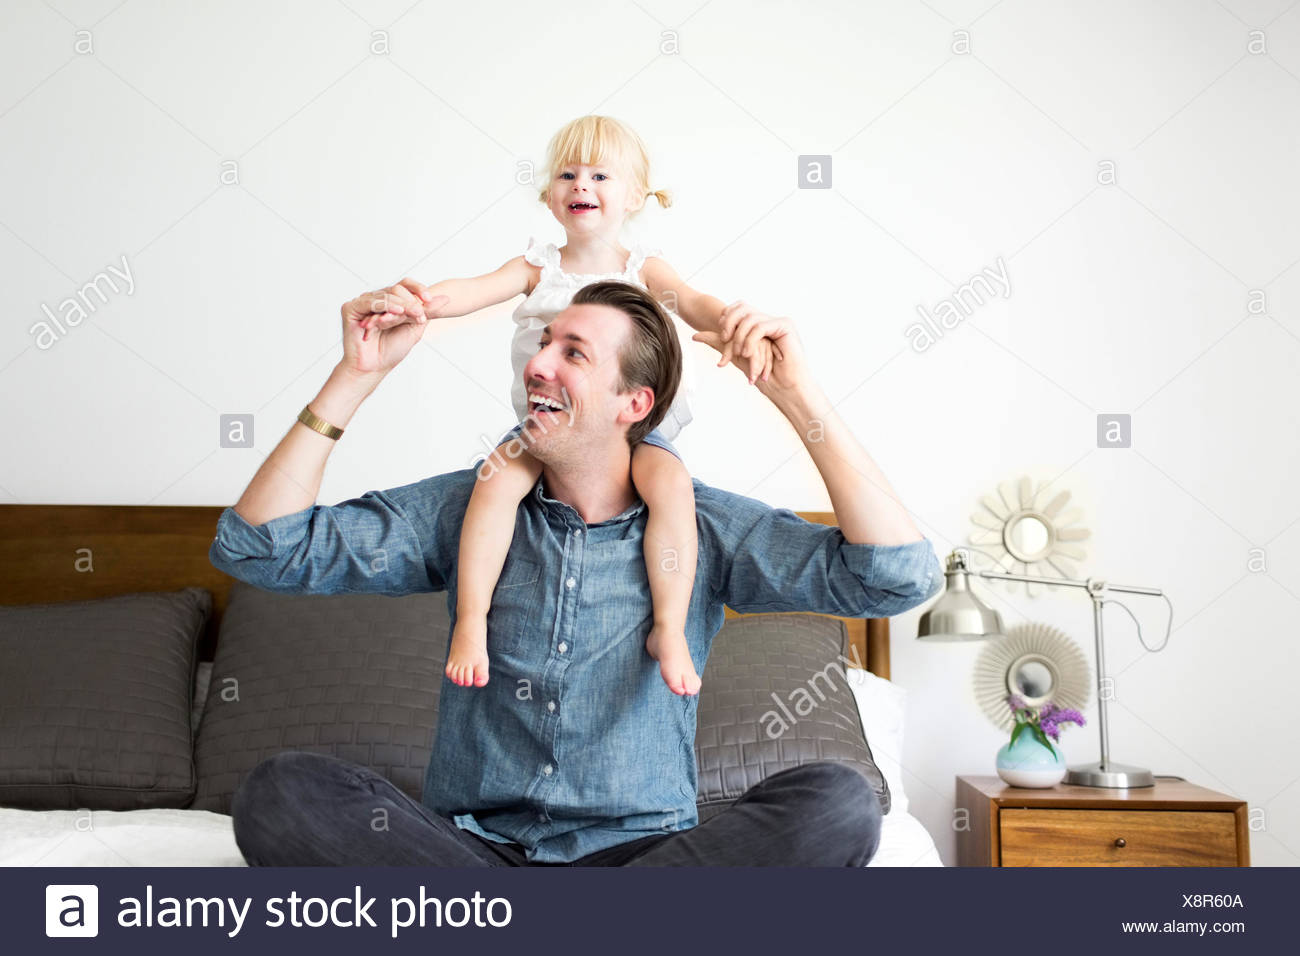 Portrait of father carrying daughter (2-3) on shoulders - Stock Image